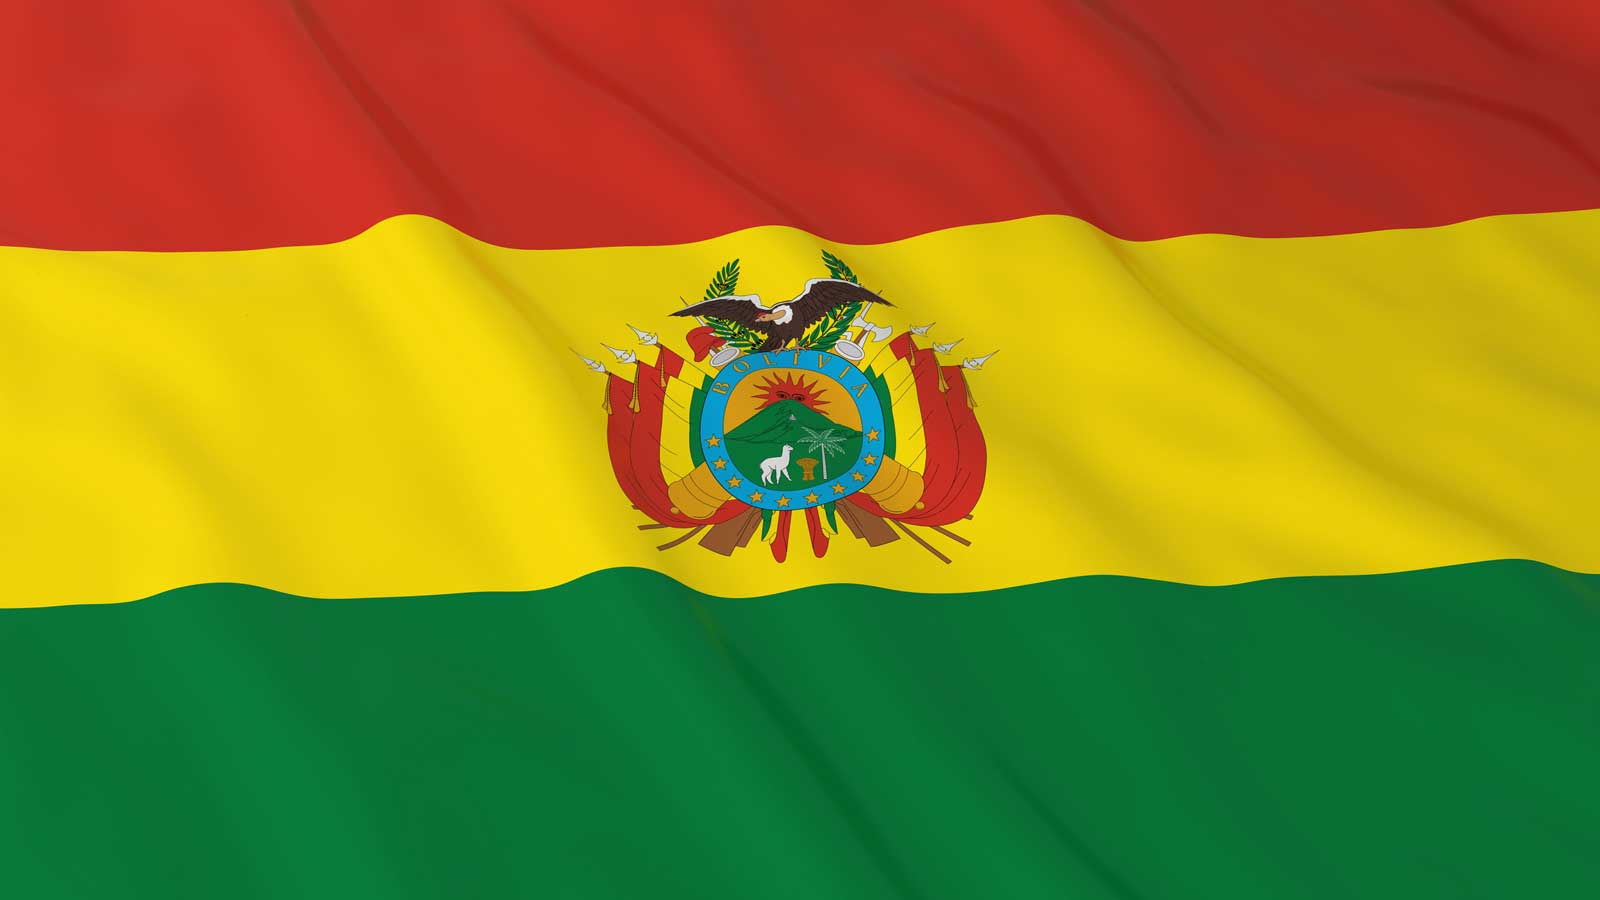 Bolivia has a population of 10.5 million. Despite being a country rich with resources, it is still one of the poorest countries in Latin America. Around 45 percent of the population lives below the poverty line. The official language is Spanish; Bolivians also speak the Aymara and Quechua languages.